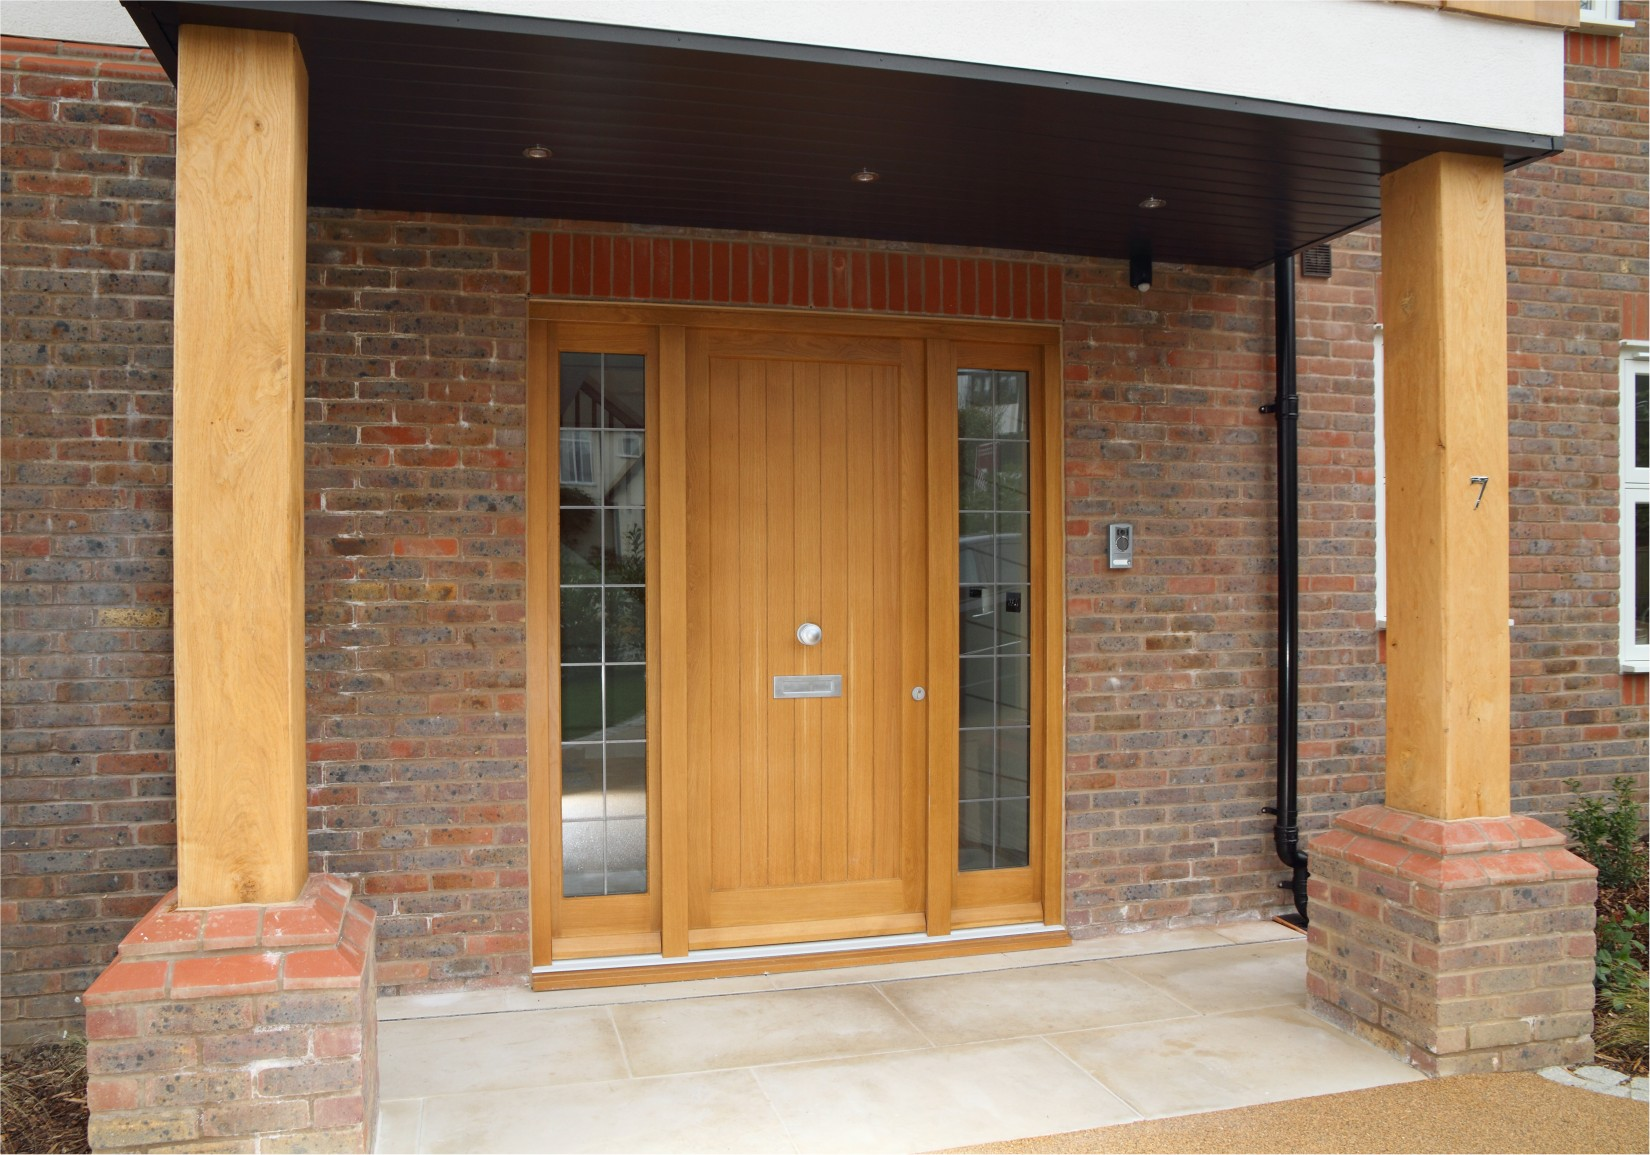 New project on design double glazing blogger for Window door design